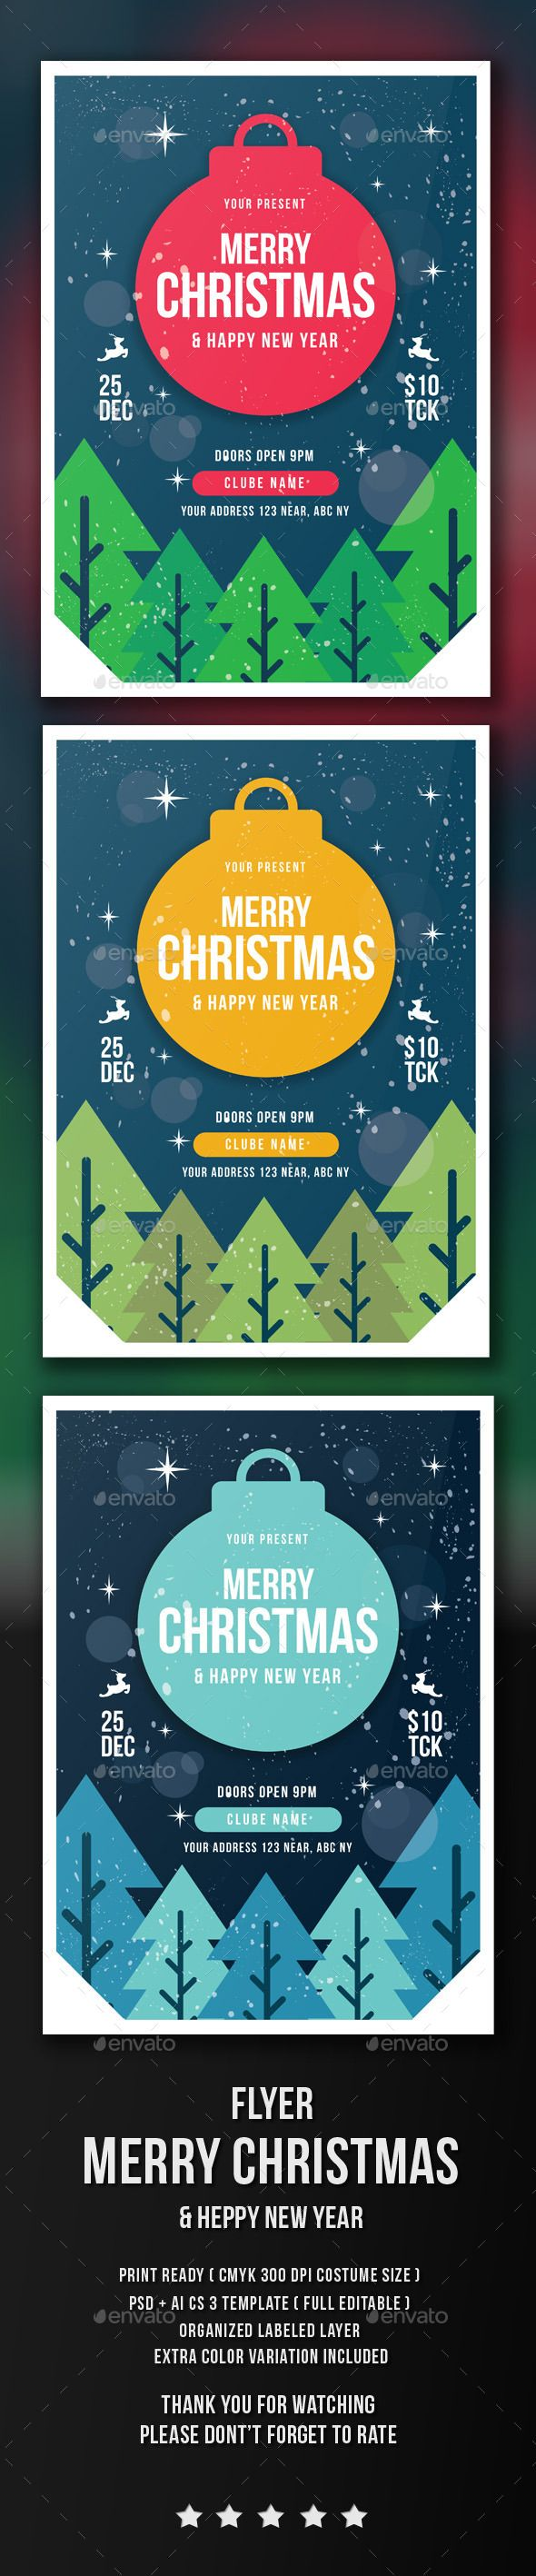 Xmas poster design - Christmas Flyer Template Psd Design Xmas Download Http Graphicriver